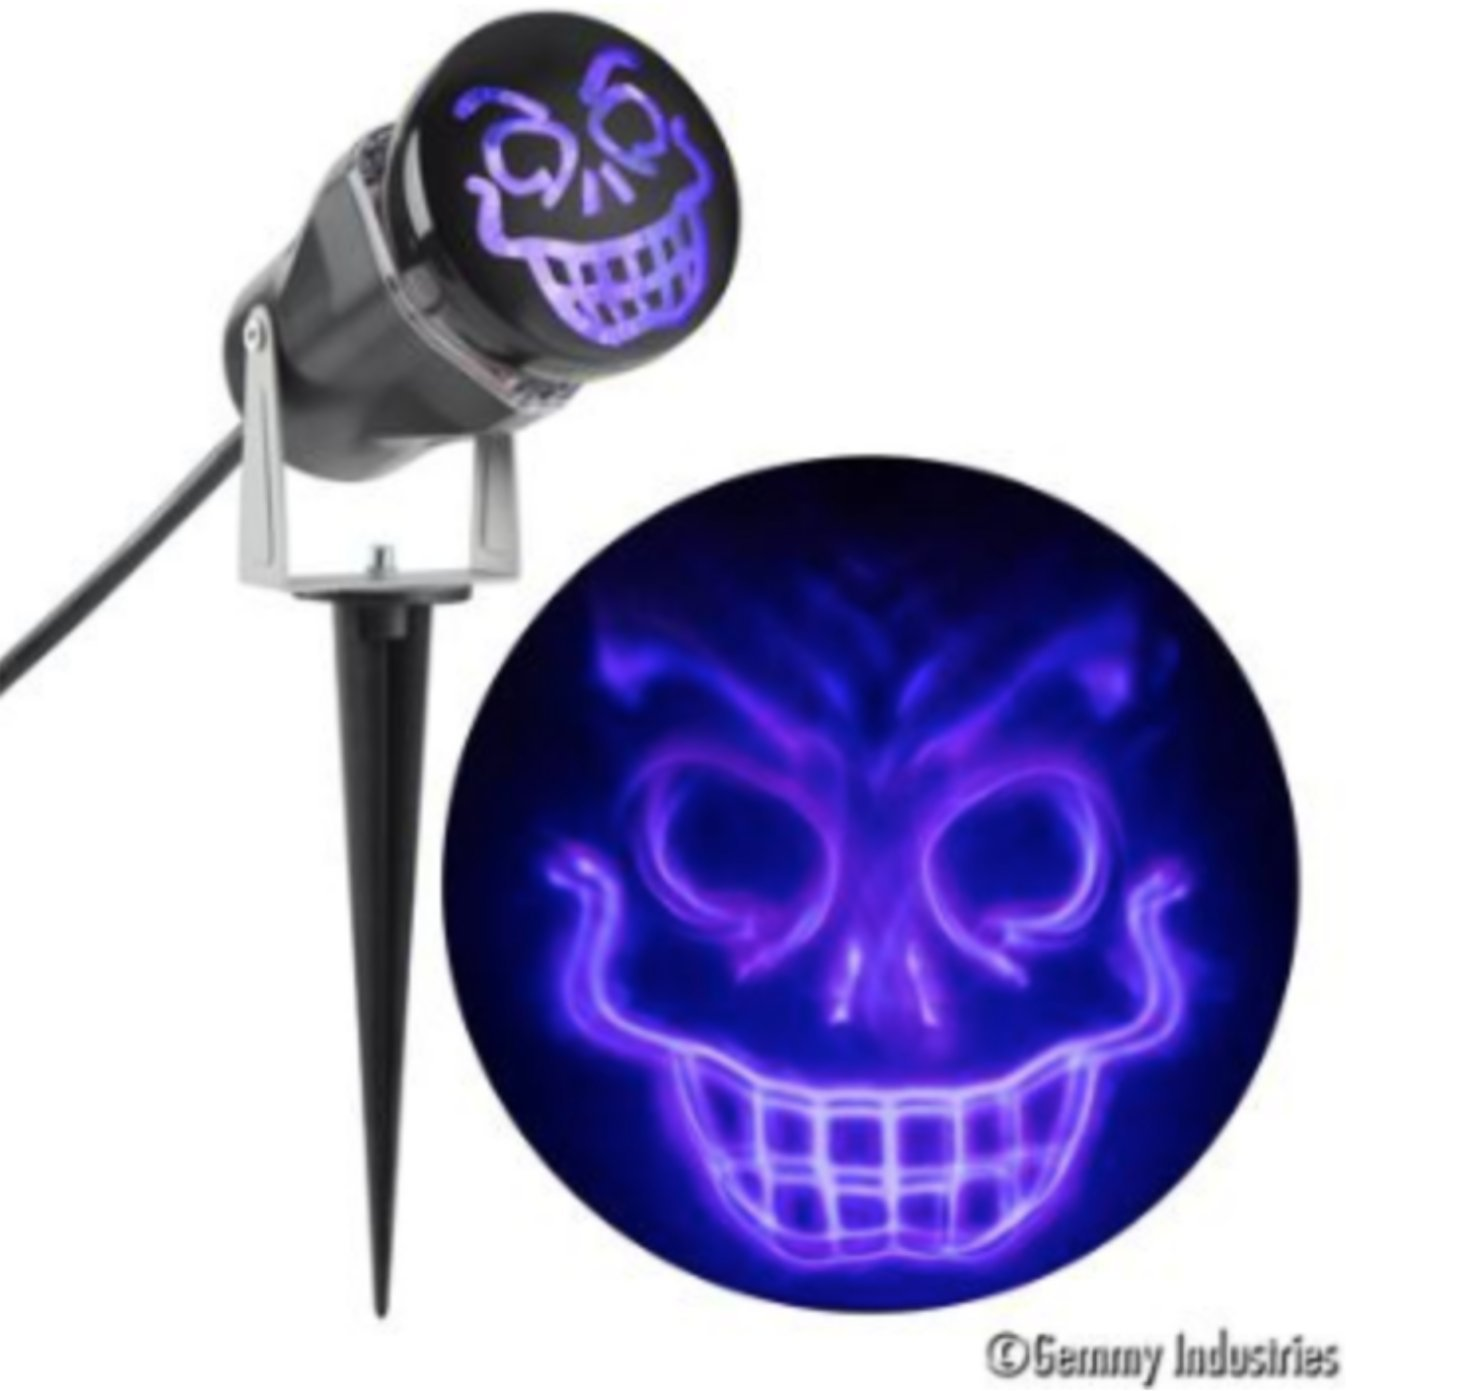 Light Show Projection Ghost Flame for Halloween, Parties, Expo, Events, Outdoor and Shows (1 Pack)